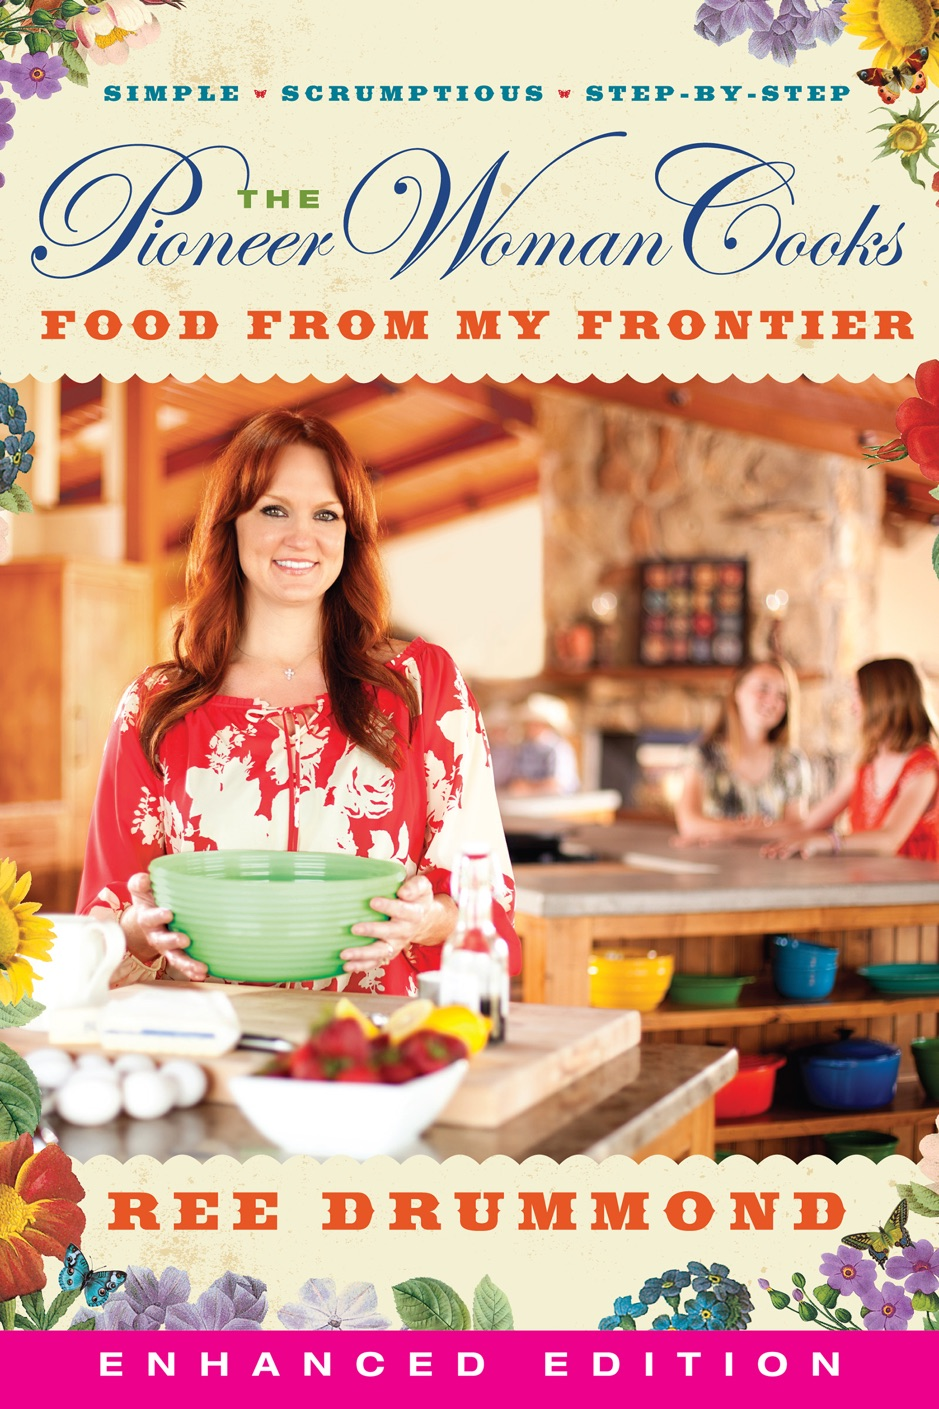 ‎The Pioneer Woman Cooks: Food from My Frontier (Enhanced Edition)